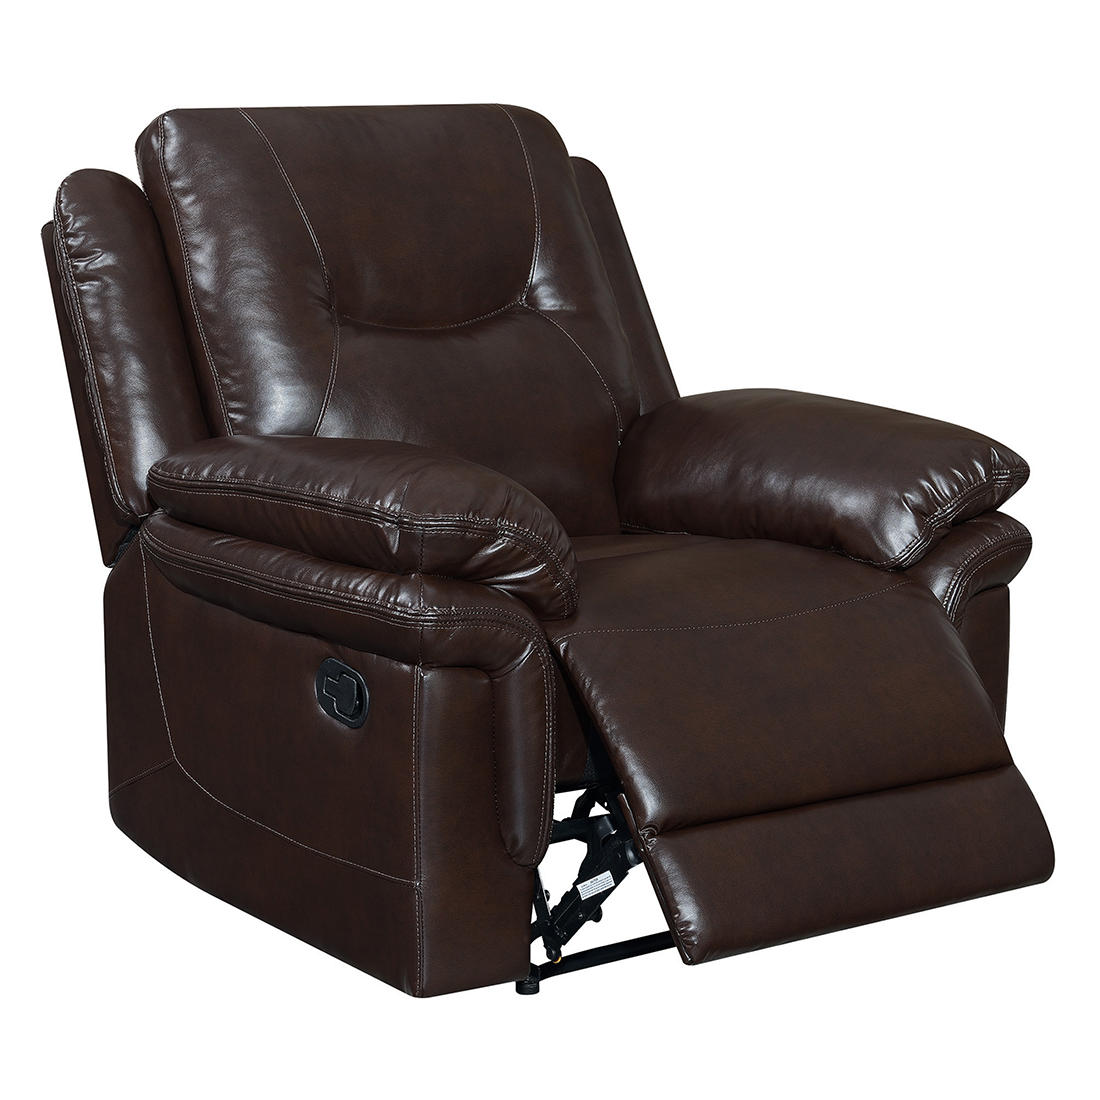 Wondrous Windsor Recliner Brown Inzonedesignstudio Interior Chair Design Inzonedesignstudiocom